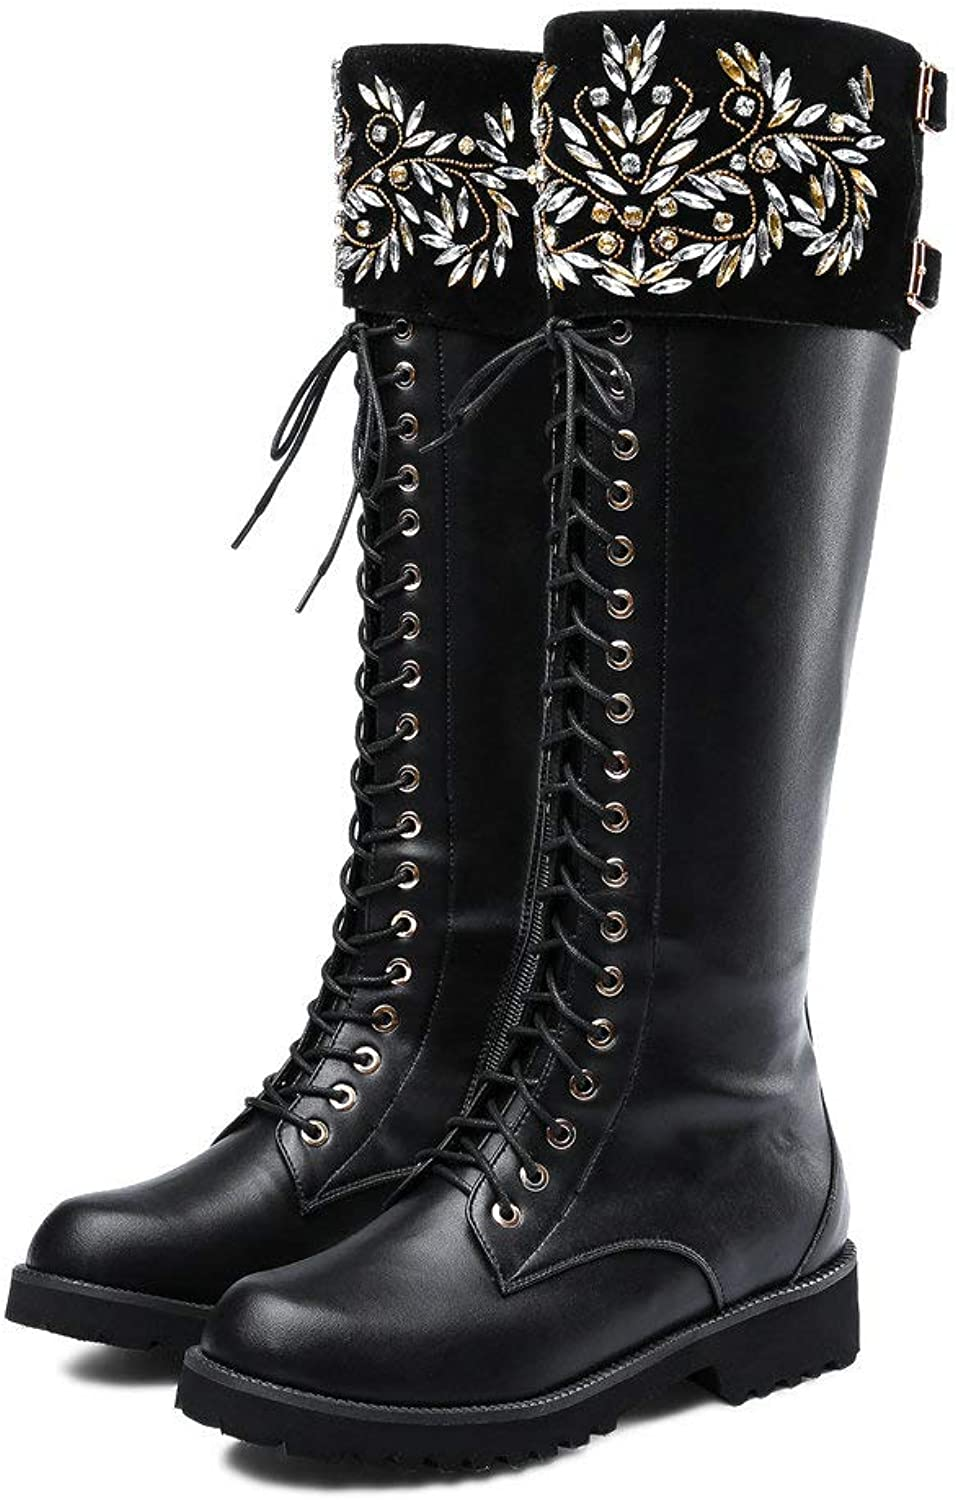 AnMengXinLing Women Knee High Combat Boot Lace Up Crystal Buckle Low Chunky Heel Motorcycle Riding Winter Leather Booties